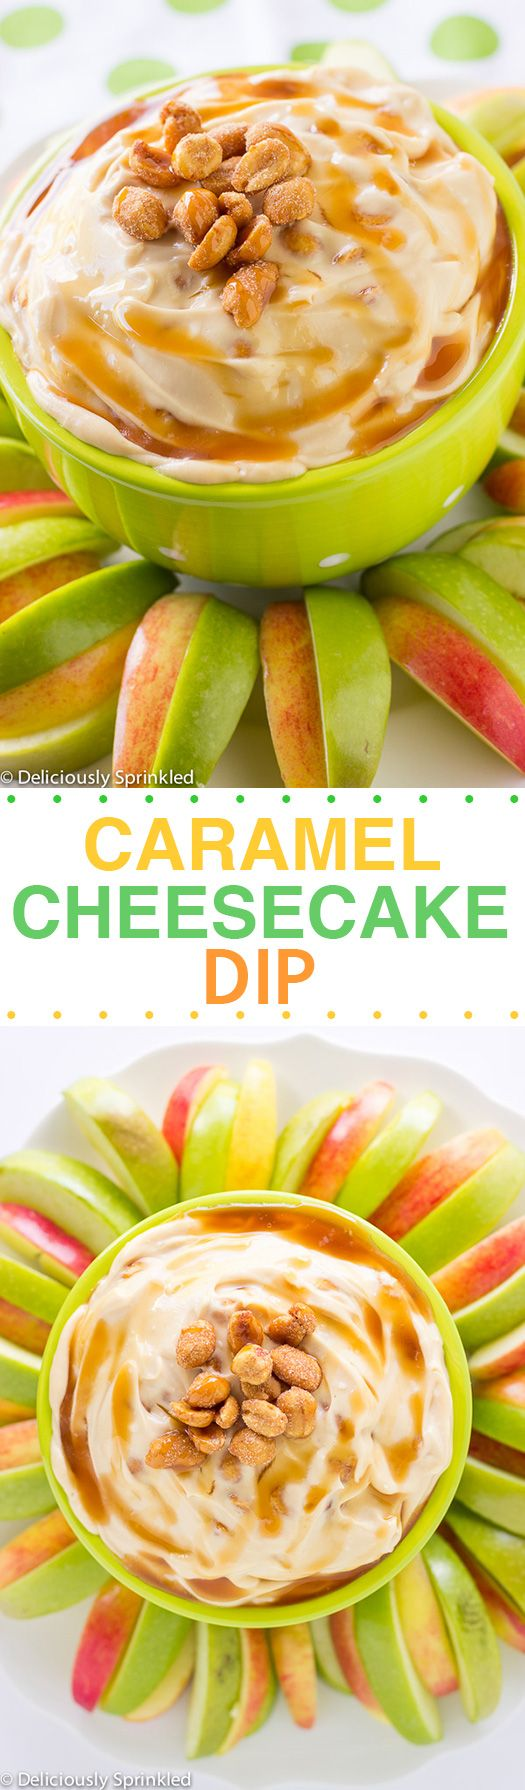 Quick & Easy To Make: Caramel Cheesecake Dip